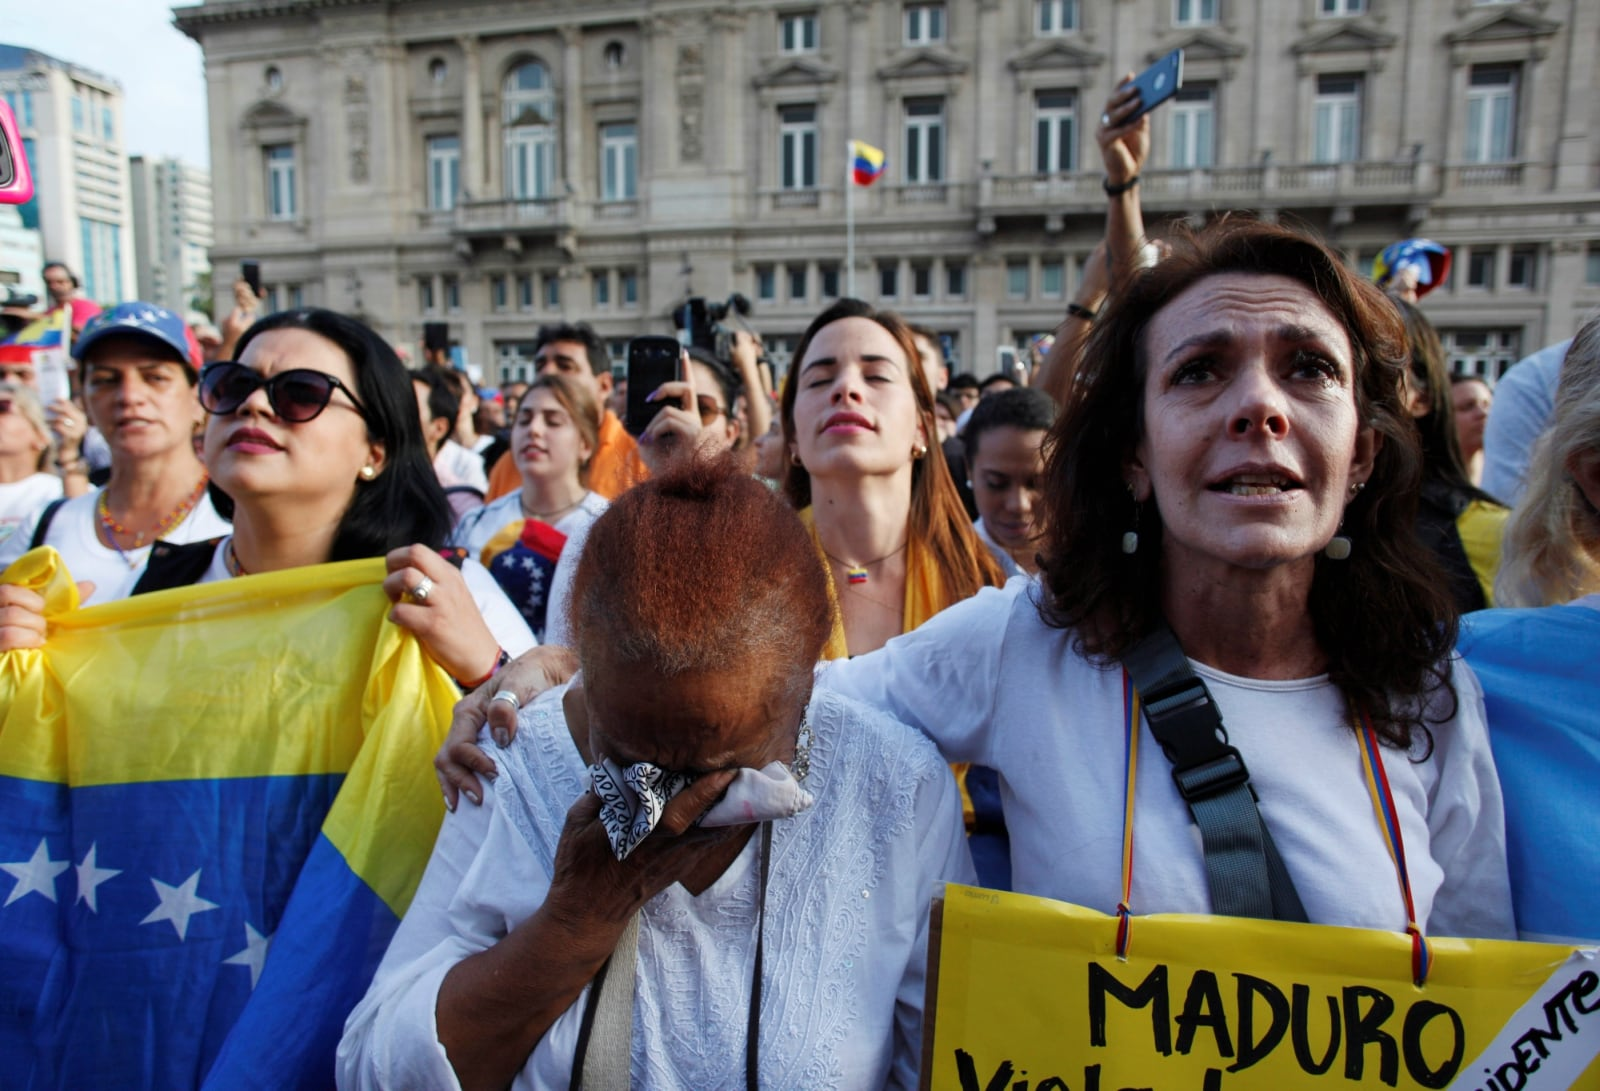 People gather in support of Venezuela's opposition leader Juan Guaido on the Vatican Square in Buenos Aires, Argentina January 23, 2019. REUTERS/Martin Acosta